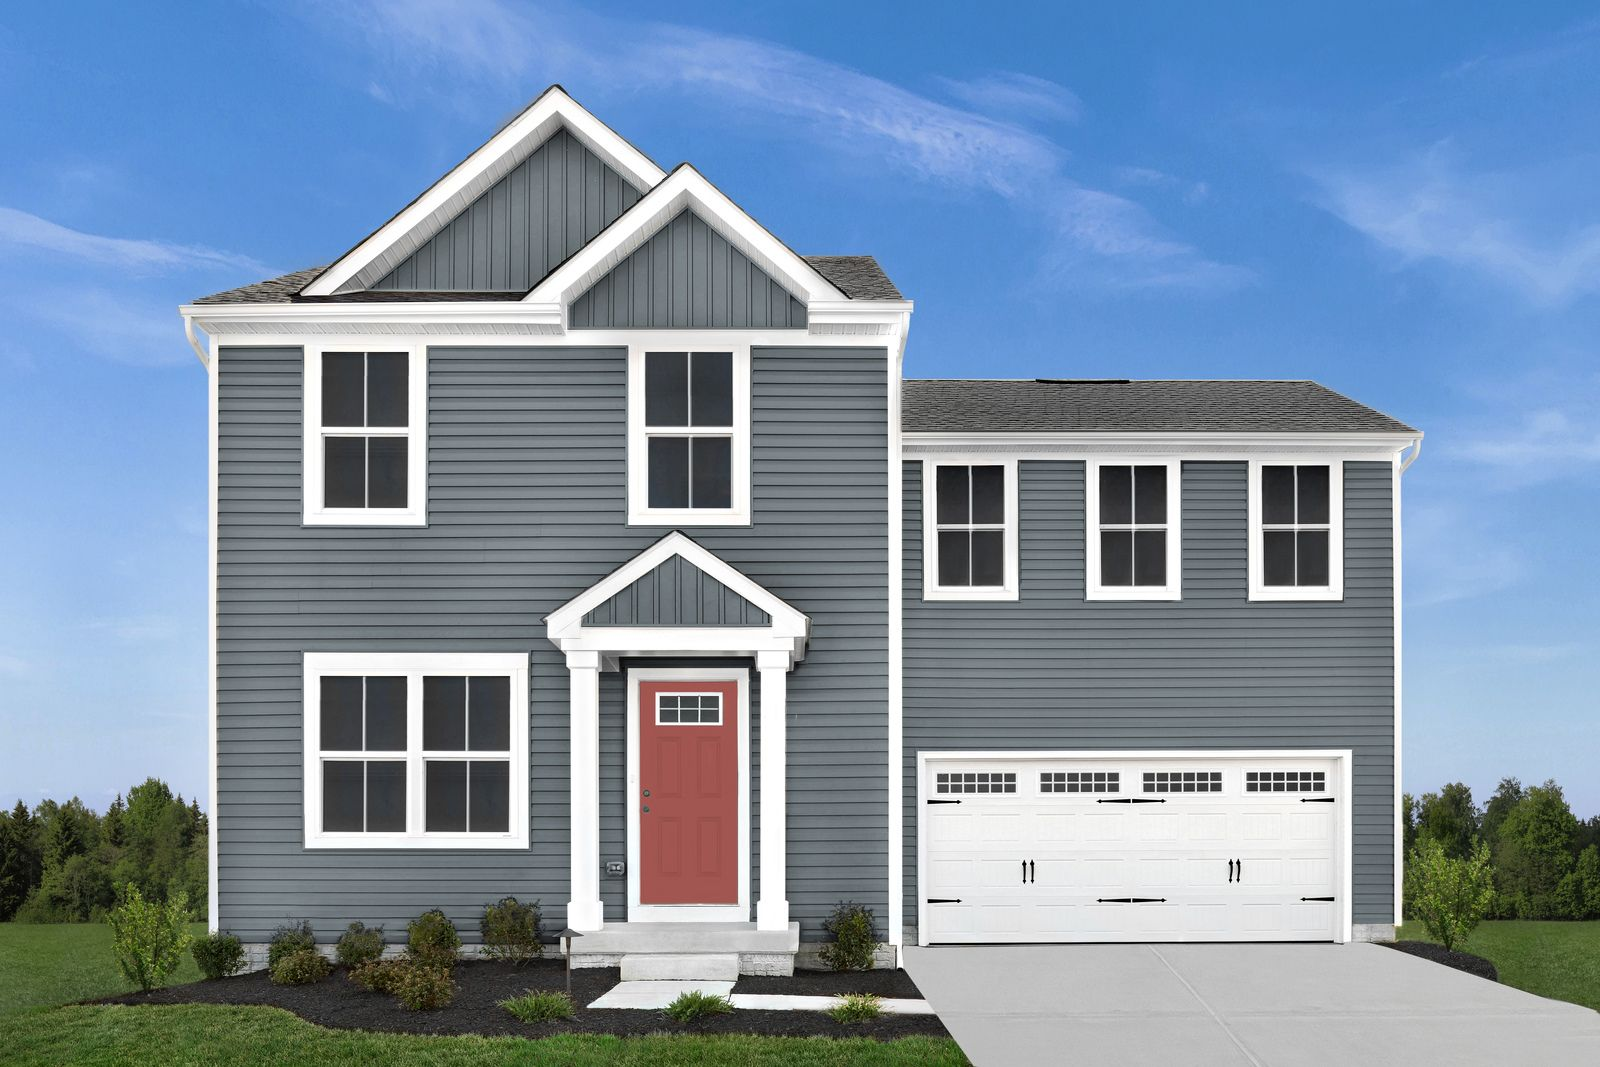 Woodside Park - Now Selling!:New 2-story and ranch homes for a great value off Rt. 125 and close to I-275. In West Clermont Schools, w/ wooded views, appliances included. Mid $200s.Click here to schedule your appointment today!